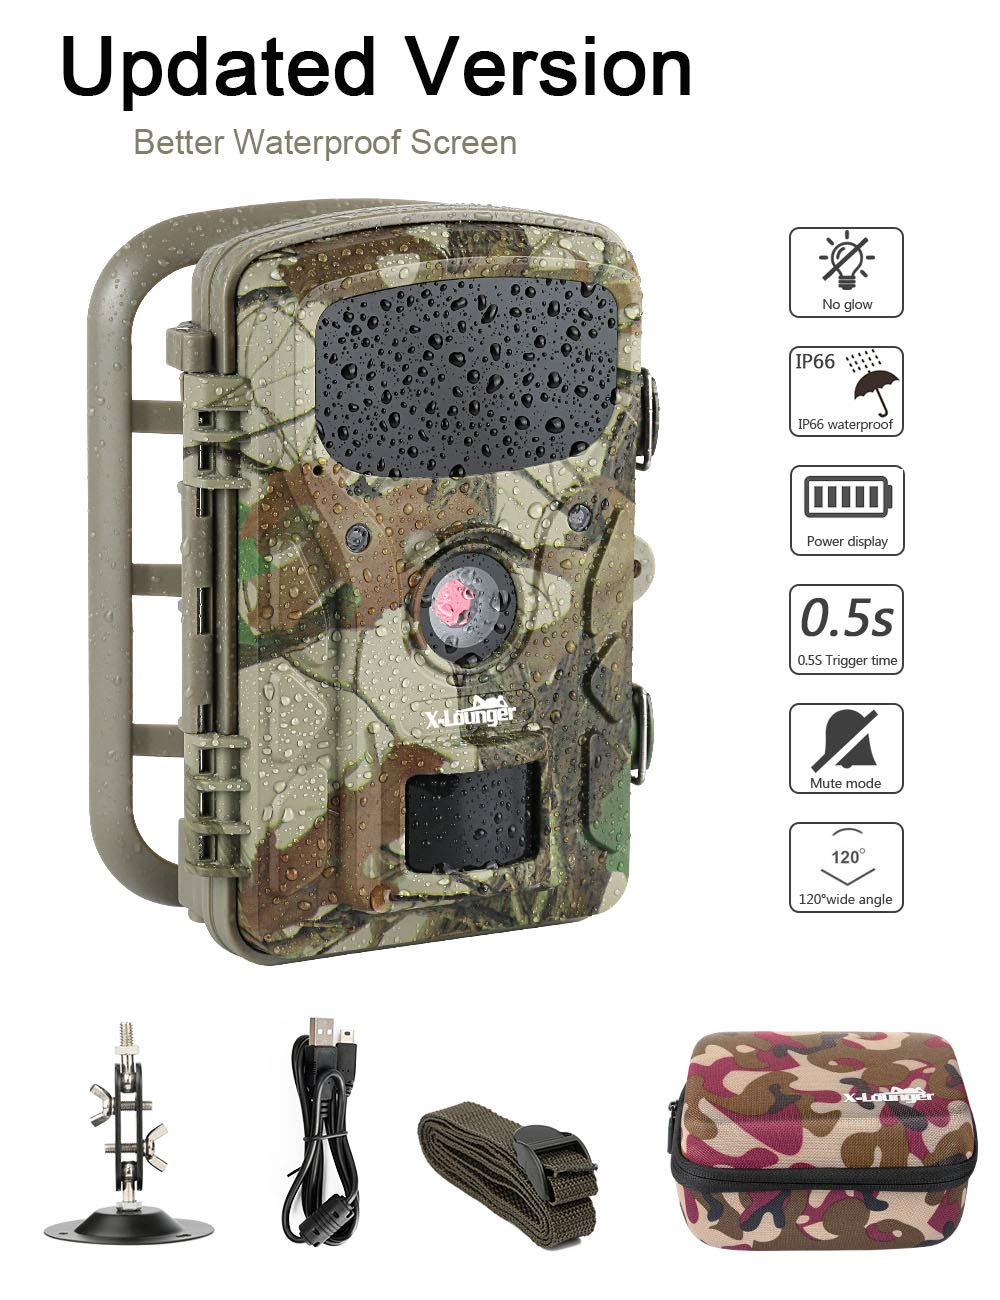 X-Lounger Game Best budget Trail Camera under 100